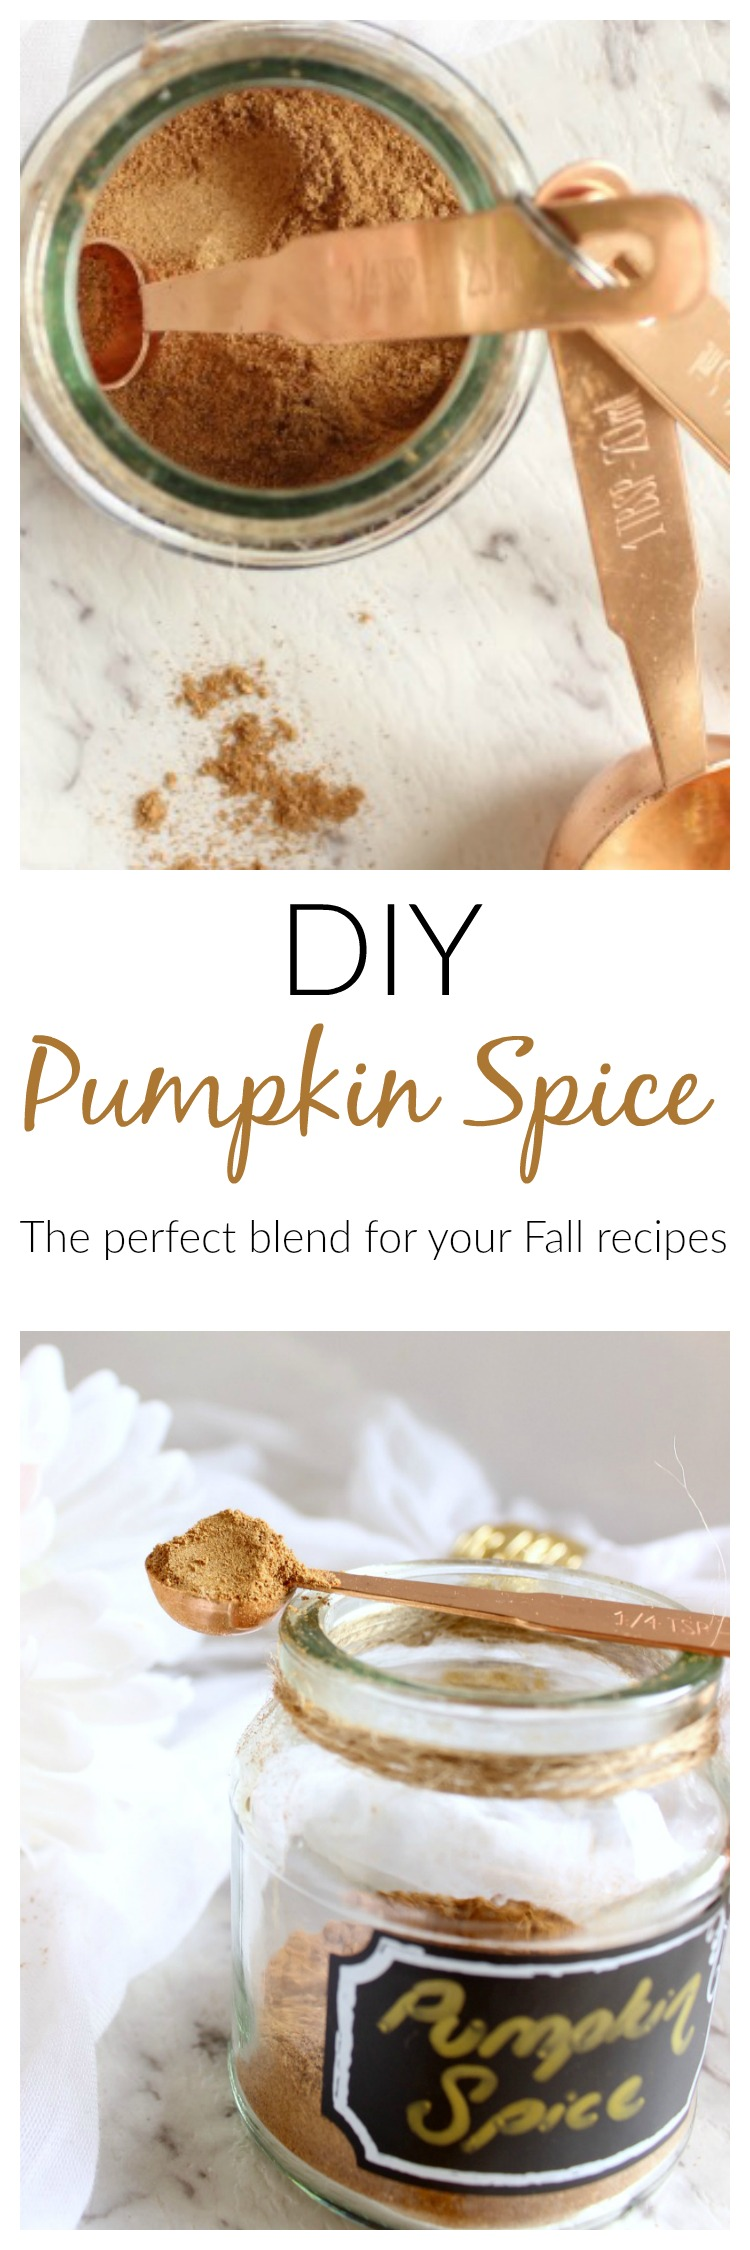 I adore this DIY pumpkin spice blend in a (nourishing) pumpkin spice latte.  I love the sweet cinnamon and nutmeg along with more firey ginger and allspice. Recipe www.prettyweethings.com